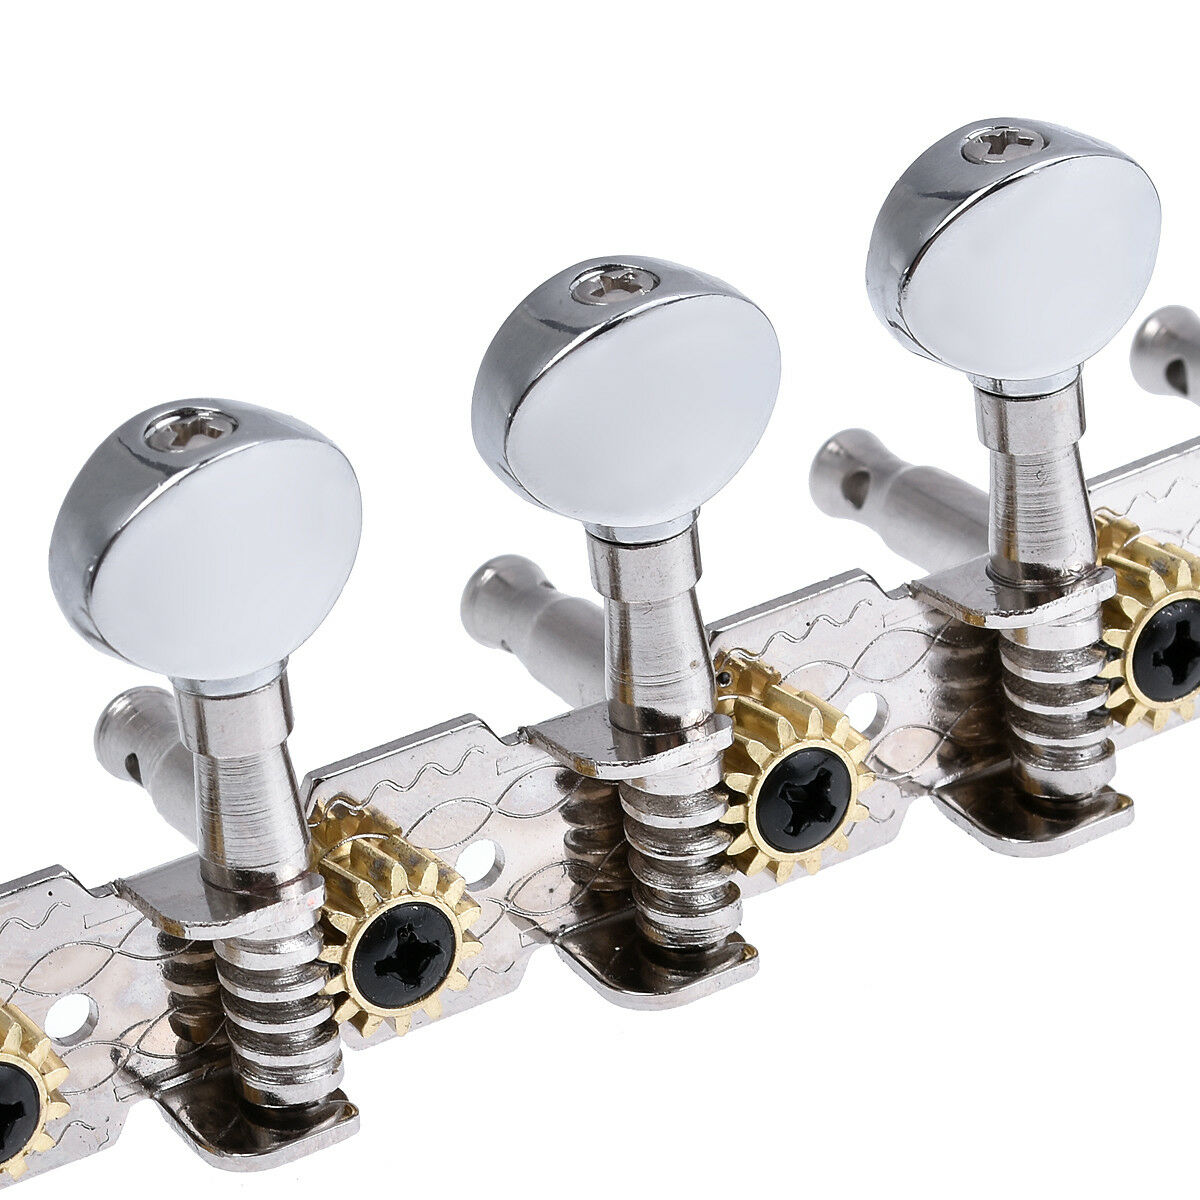 chrome guitar tuning pegs keys machine heads for 12 string acoustic parts 6l6r 634458685832 ebay. Black Bedroom Furniture Sets. Home Design Ideas